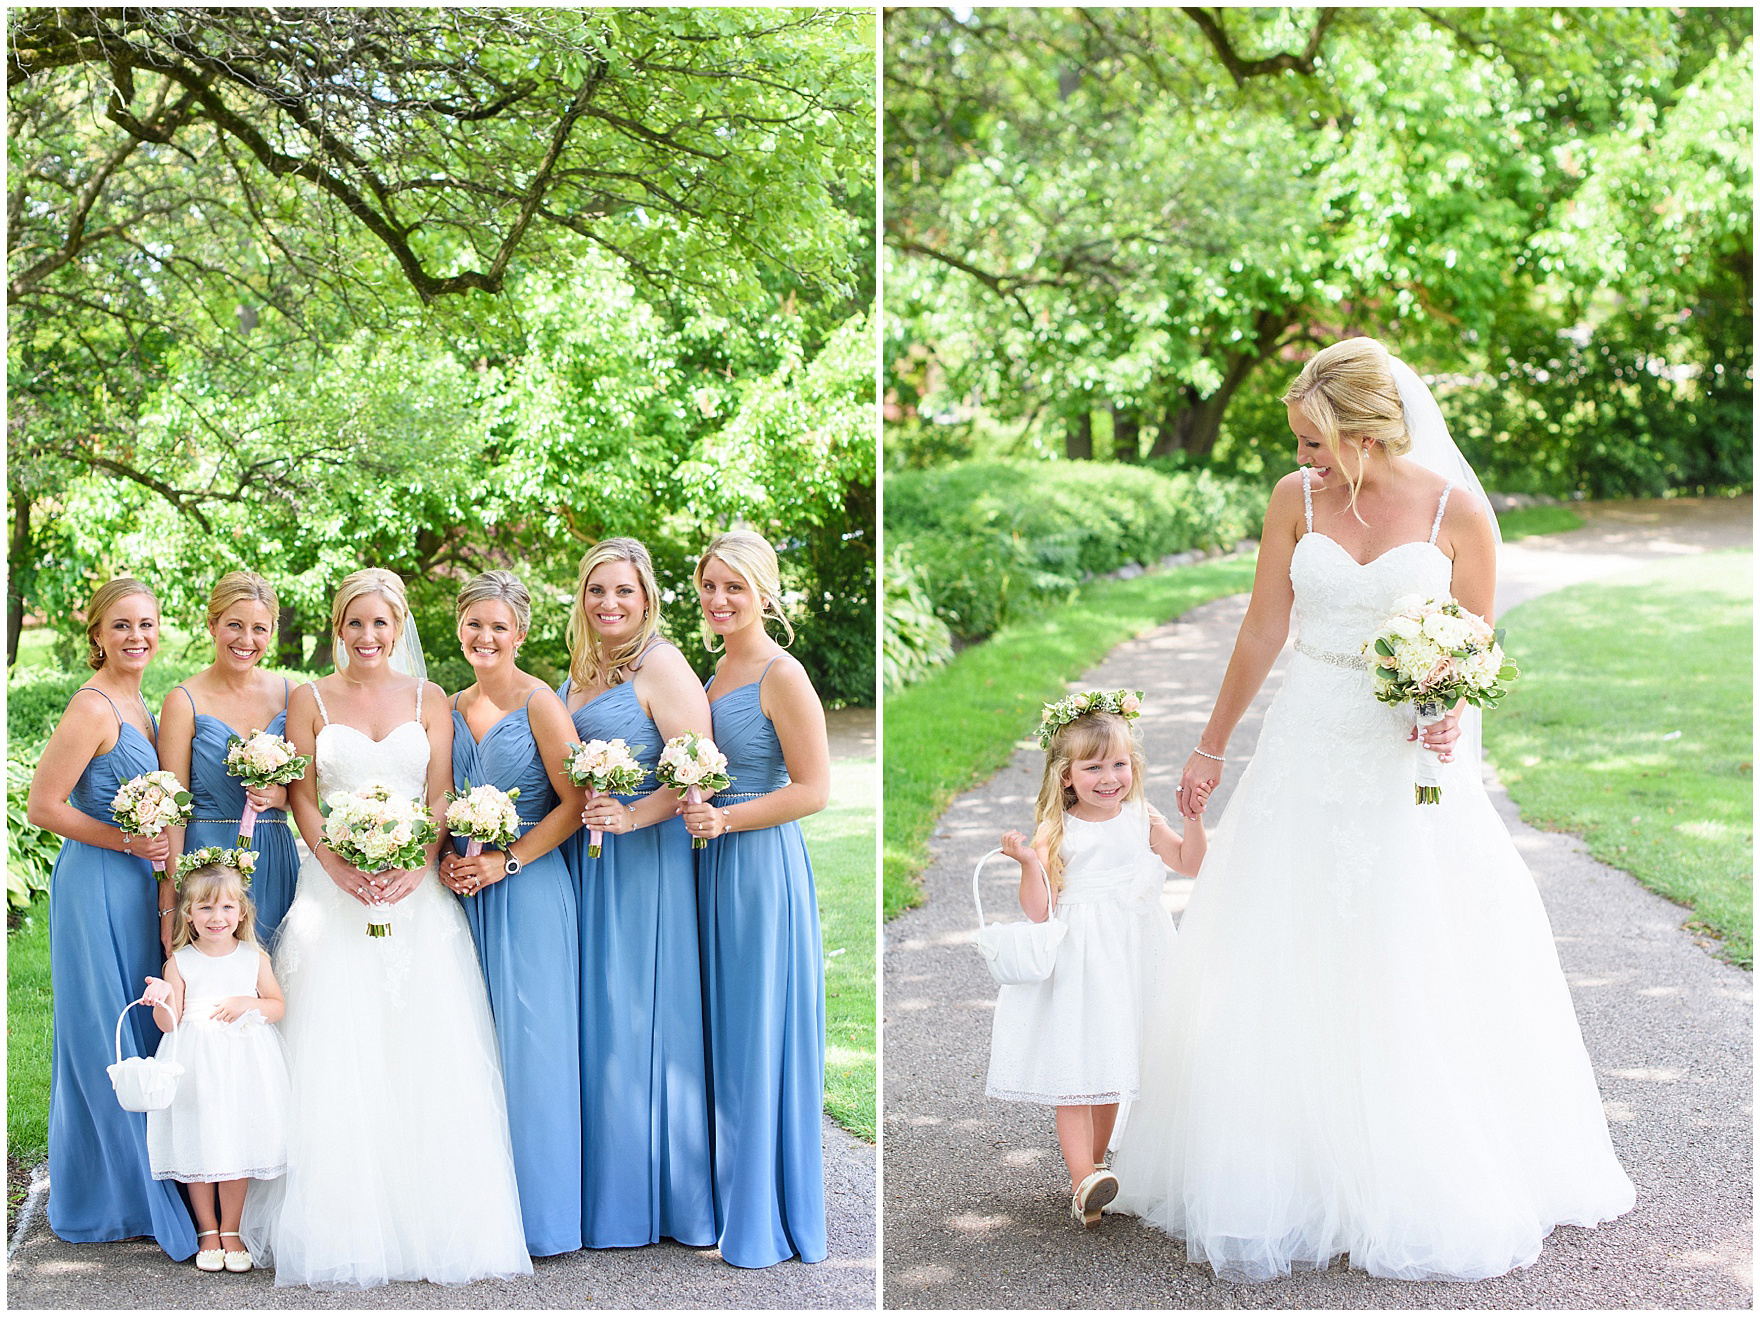 Bridesmaids and flower girl pose with the bride for an Itasca Country Club Illinois wedding.